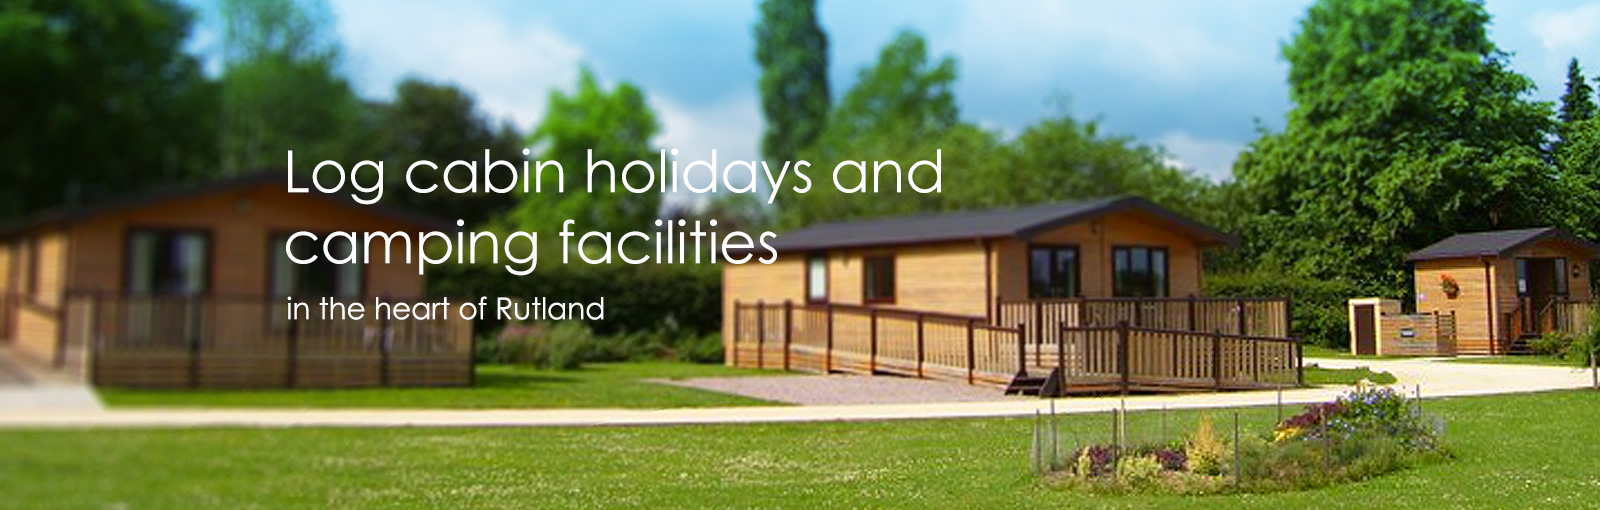 Log cabin holidays and camping facilities in the heart of Rutland